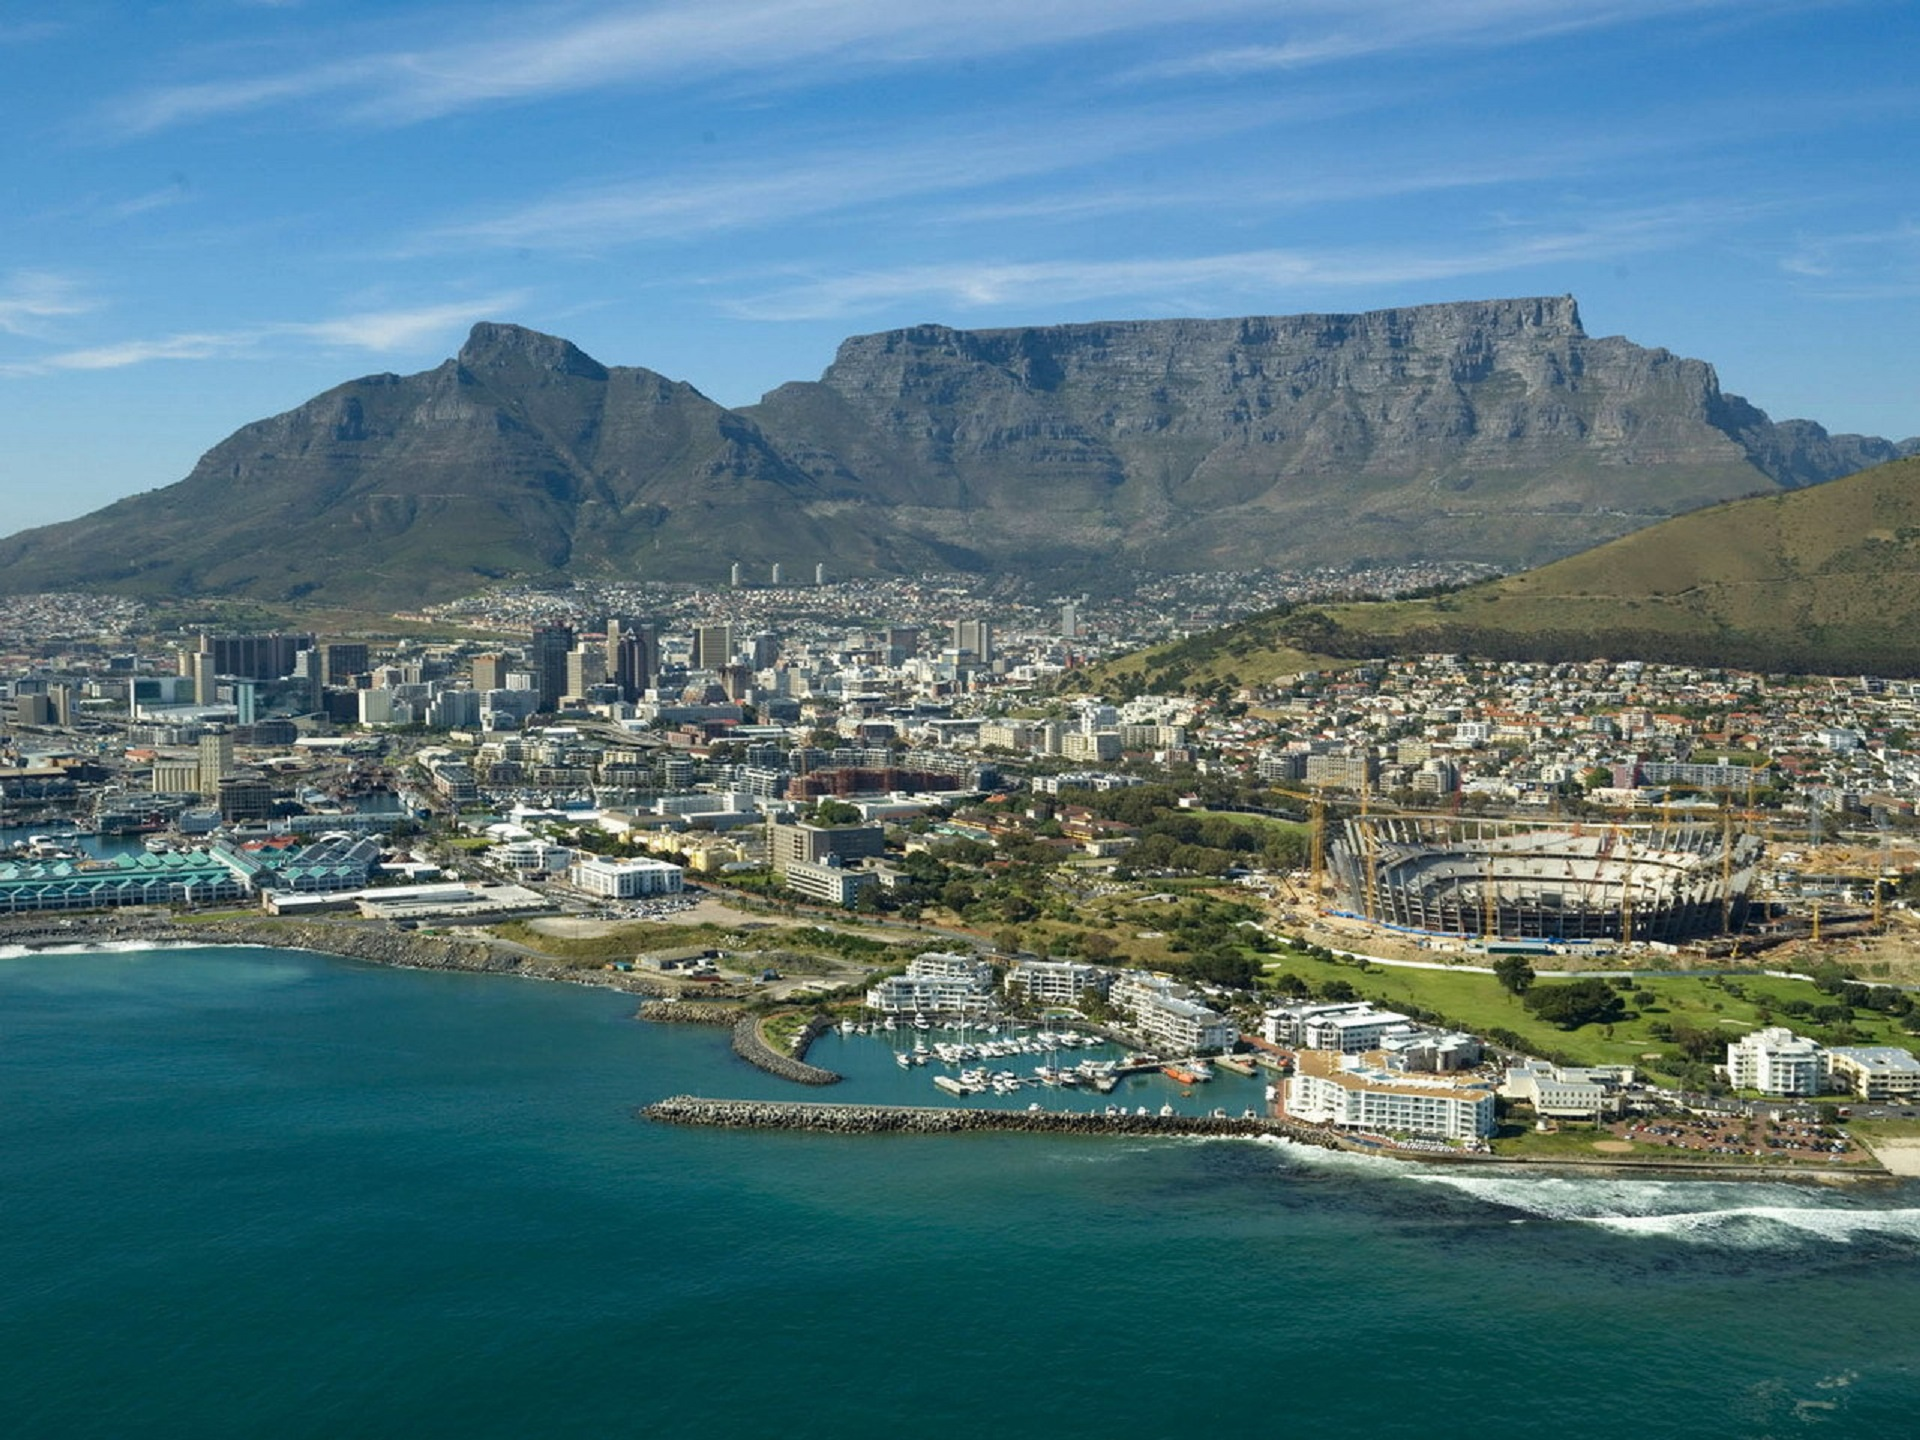 cape town wallpaper hd,body of water,coast,promontory,town,sea